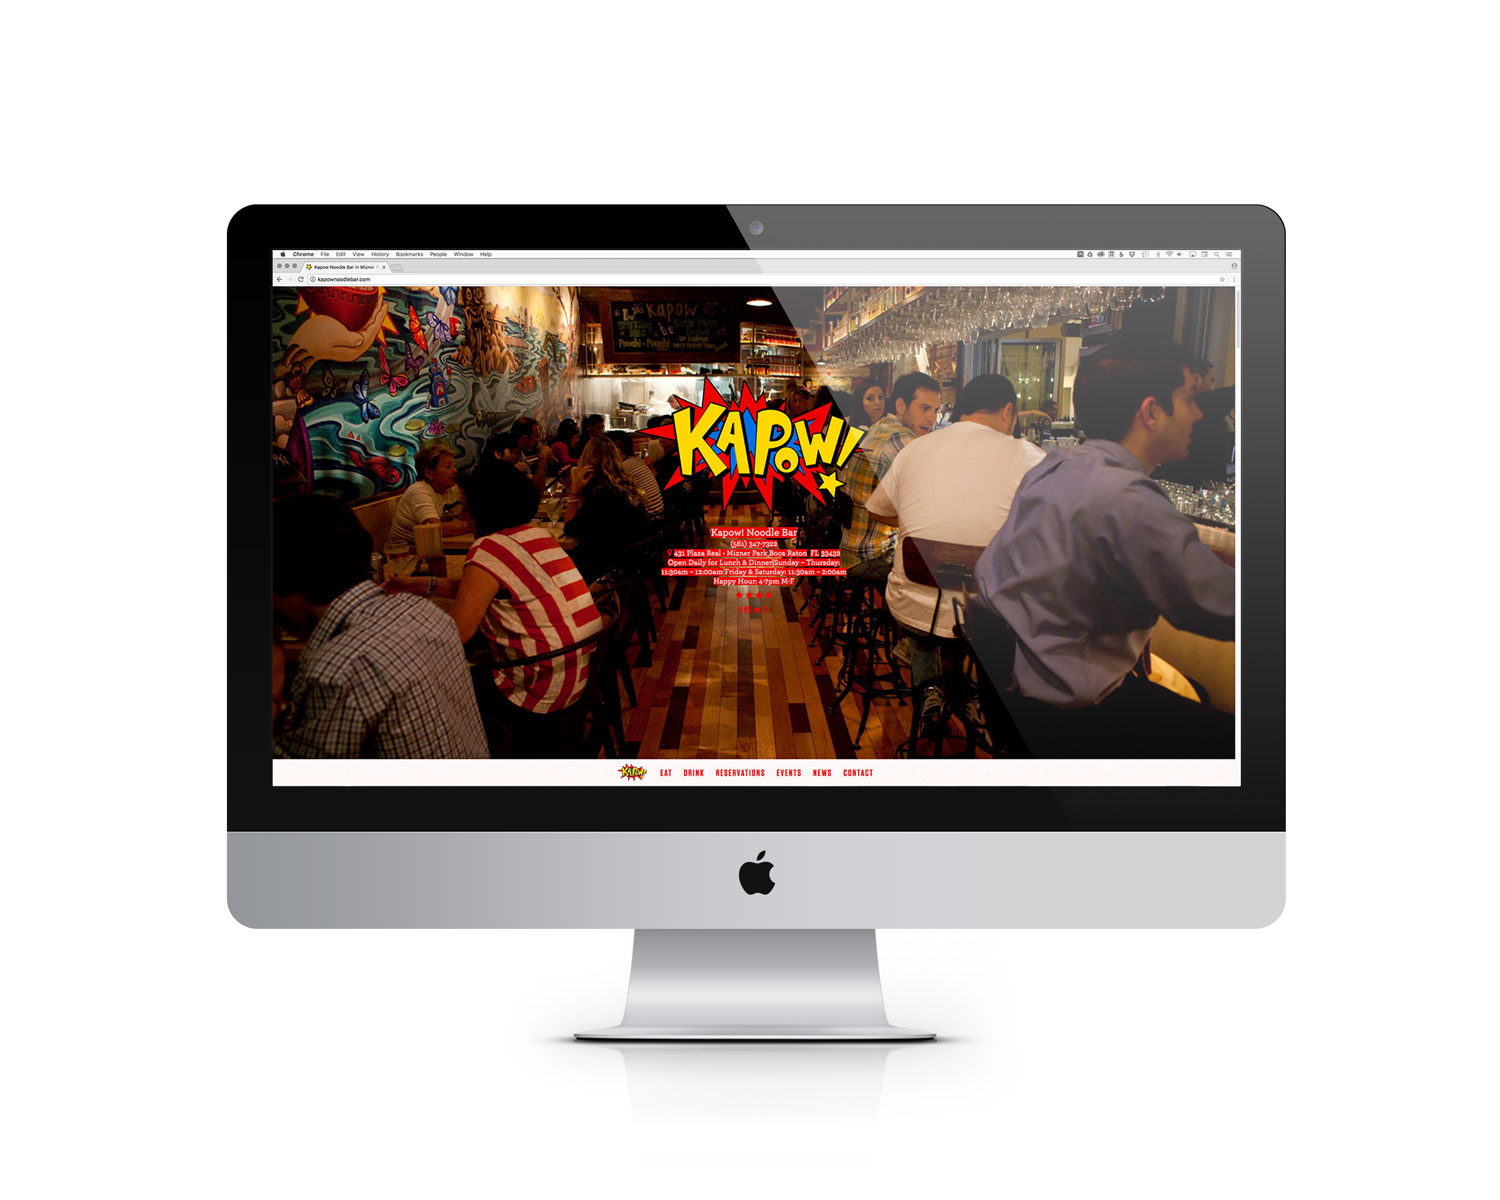 Kapow! Website